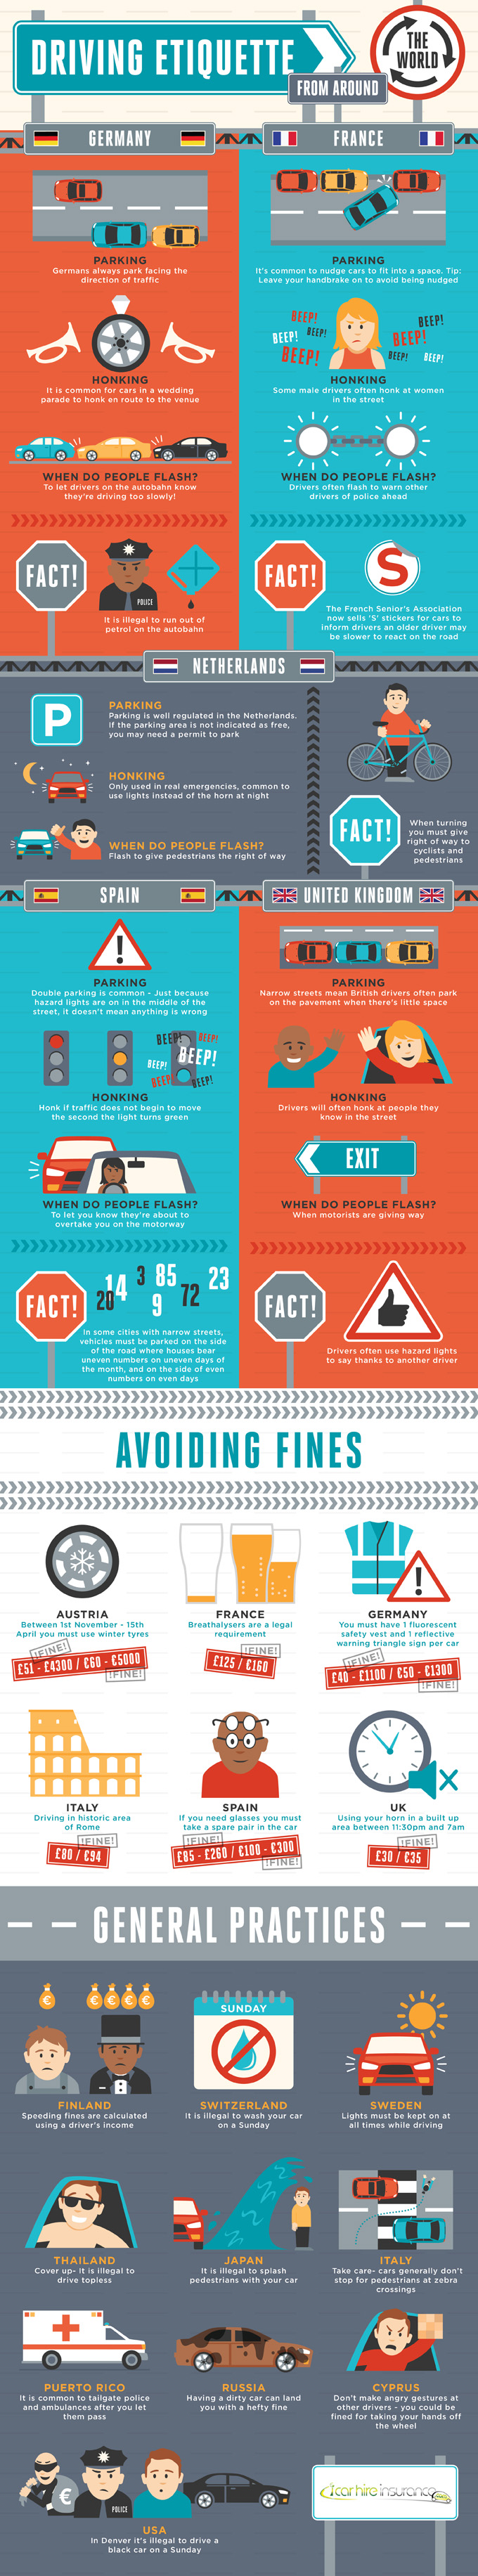 Driving Etiquette Around The World